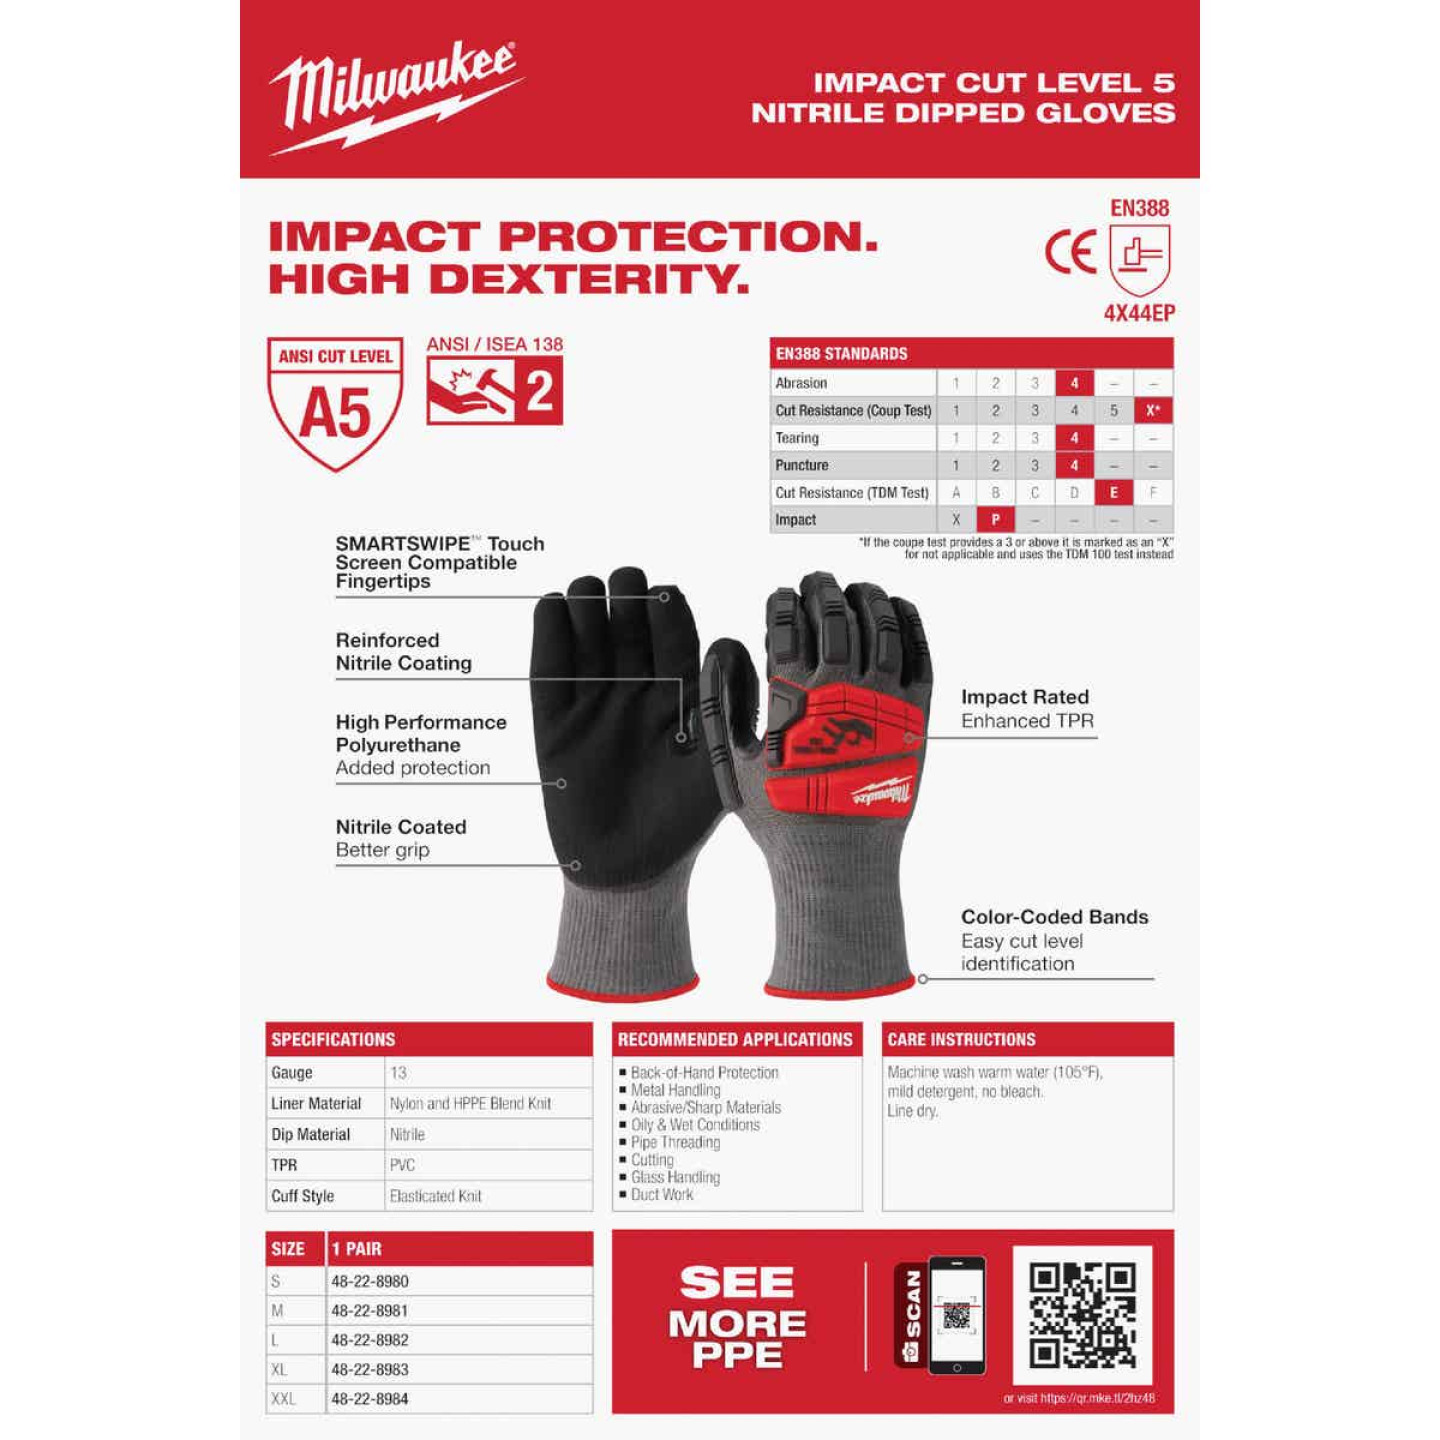 Milwaukee Impact Cut Level 5 Men's Large Nitrile Dipped Work Gloves Image 5